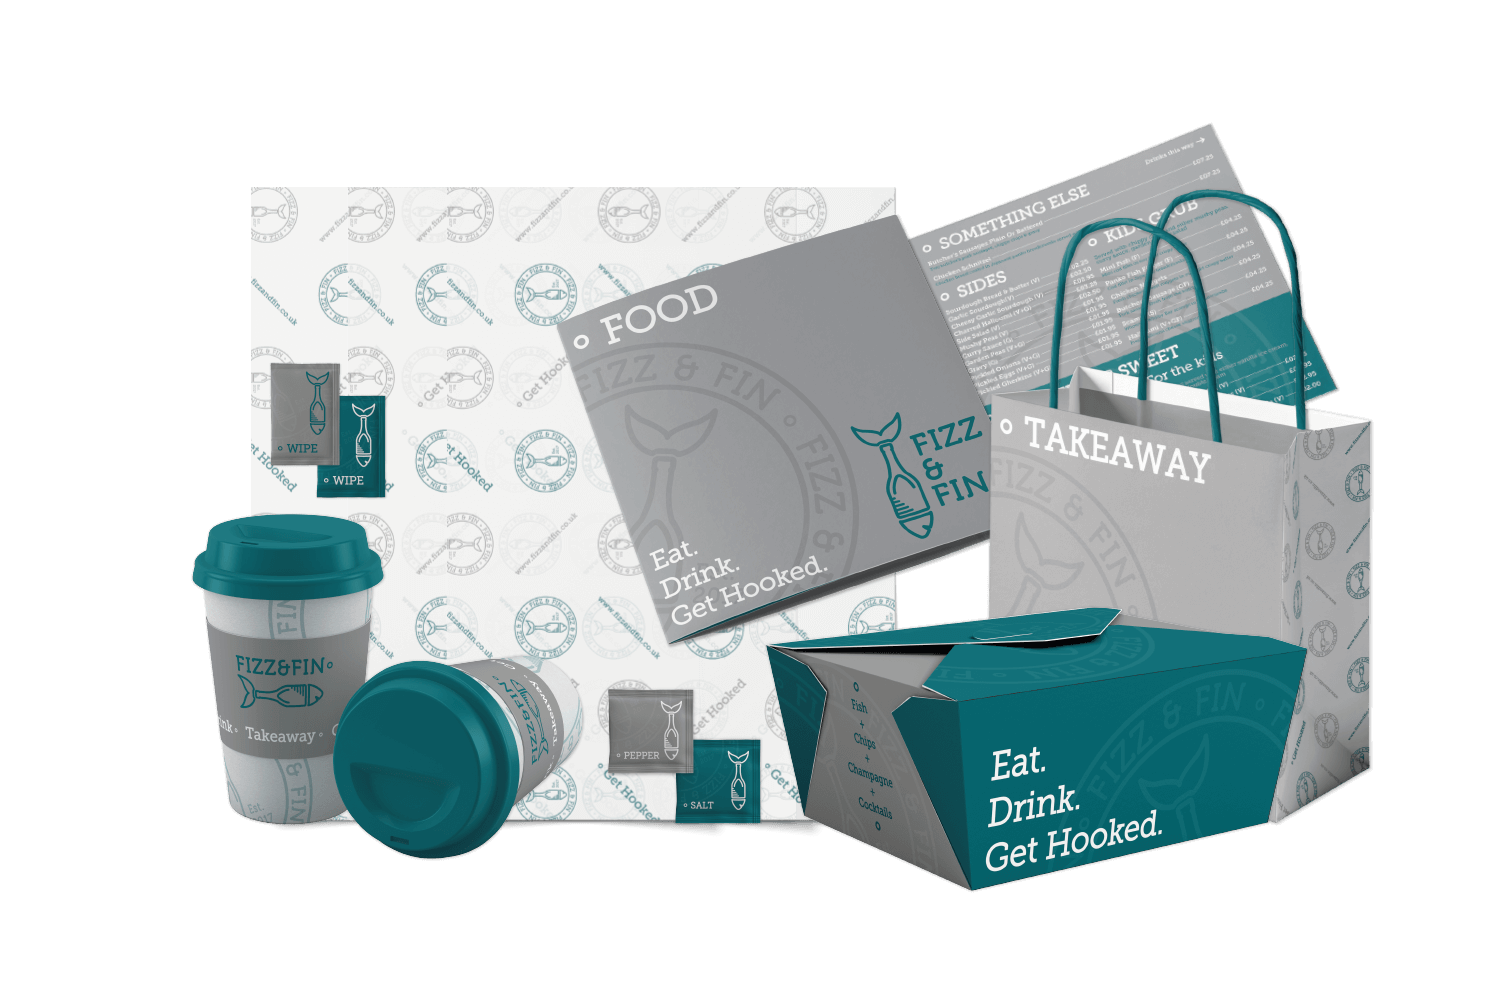 Group of branded merchandise for a fish restaurant.  Designed menus, bags, cups made by wizard pi.